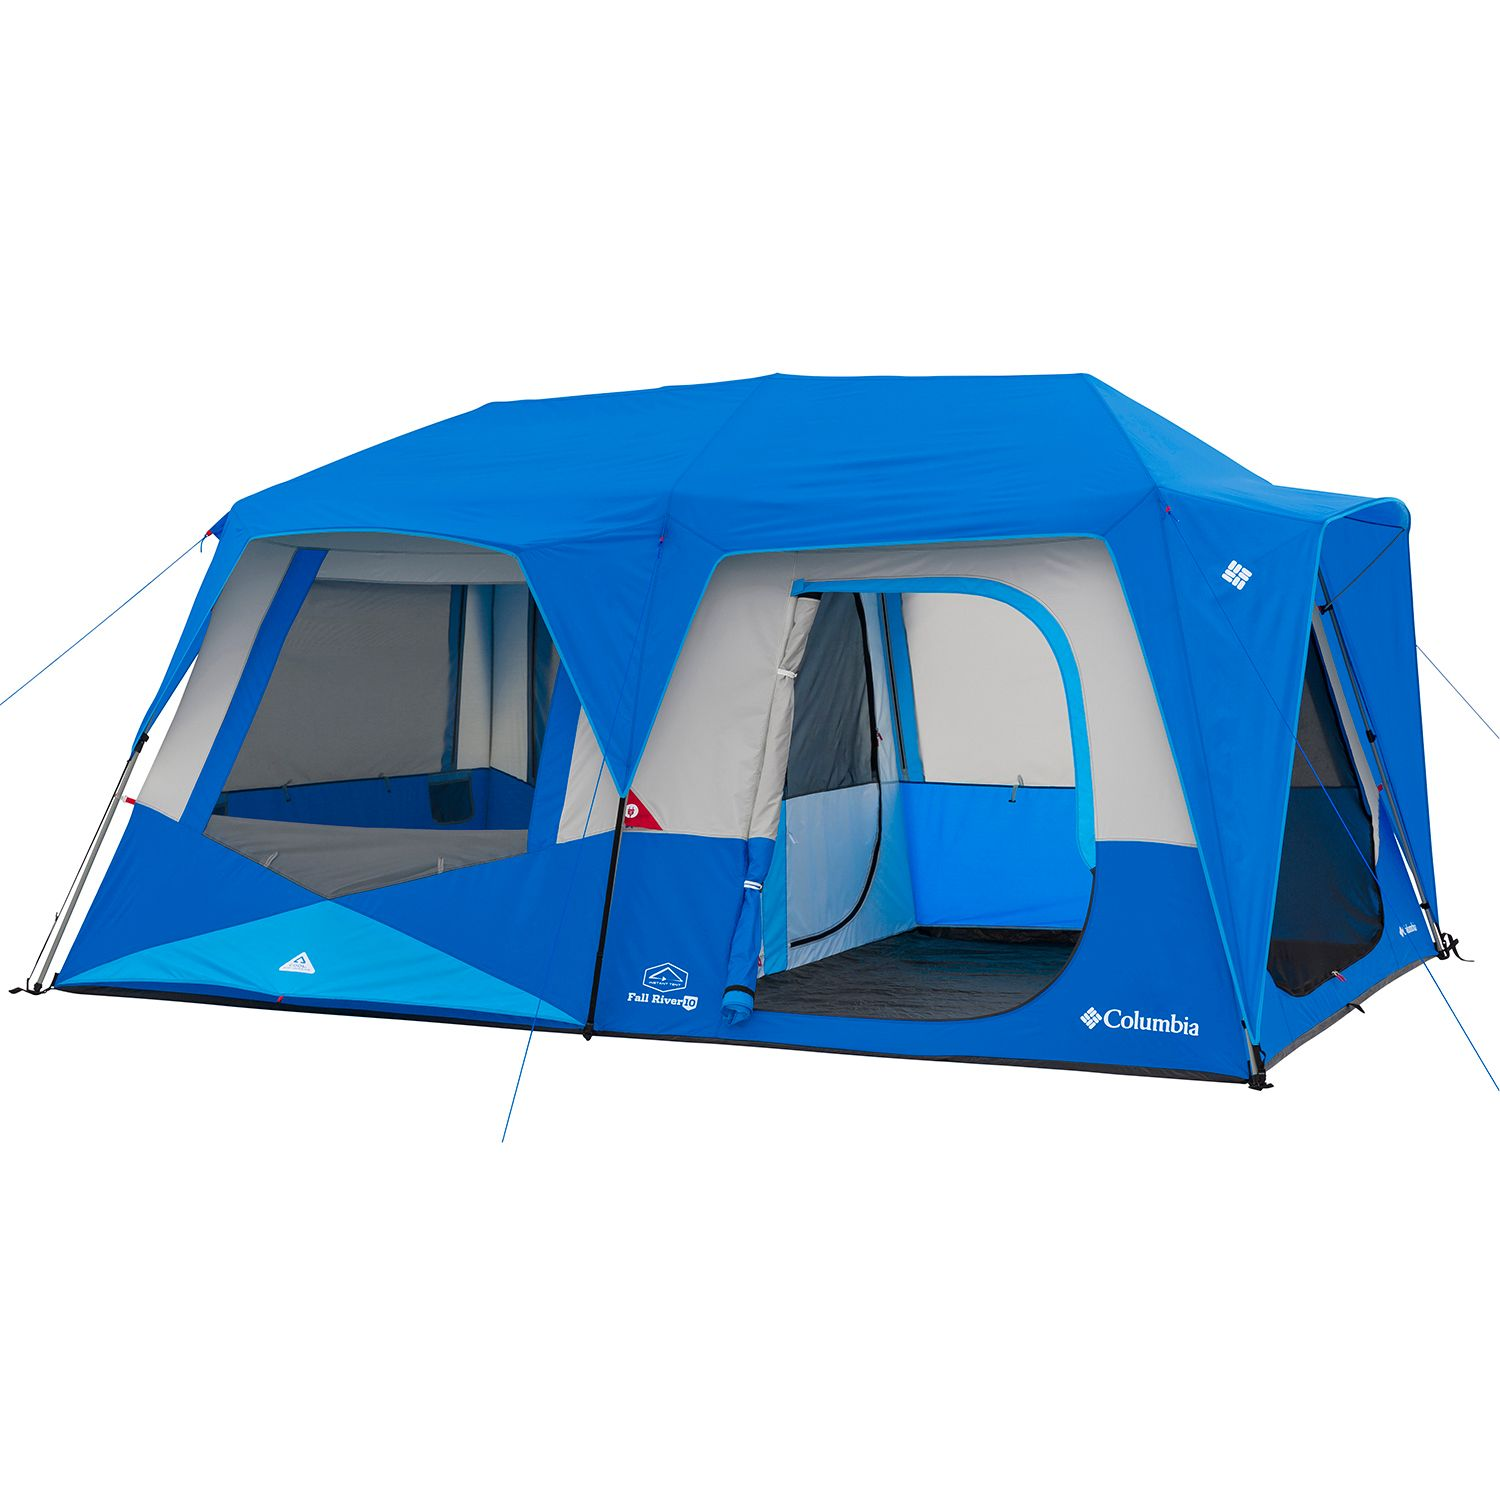 Columbia 10-Person Instant Cabin Tent  sc 1 st  Kohlu0027s & 10-Person Instant Cabin Tent